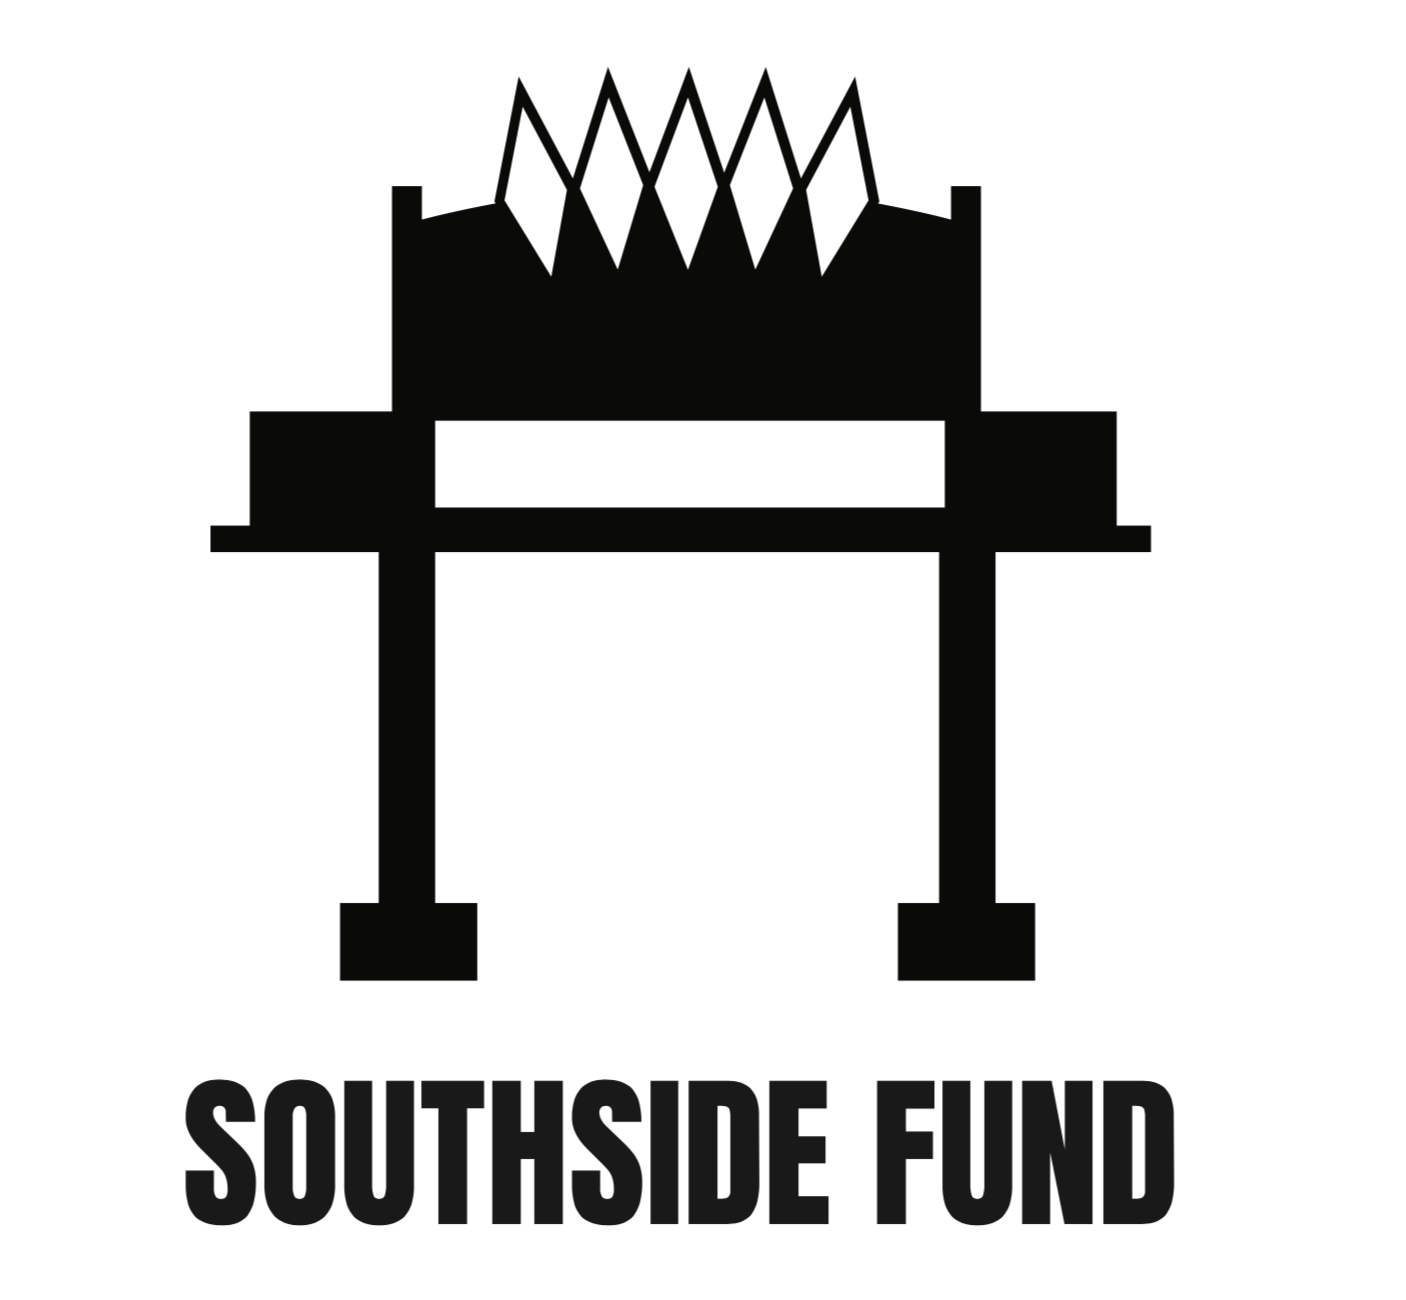 South Side Fund